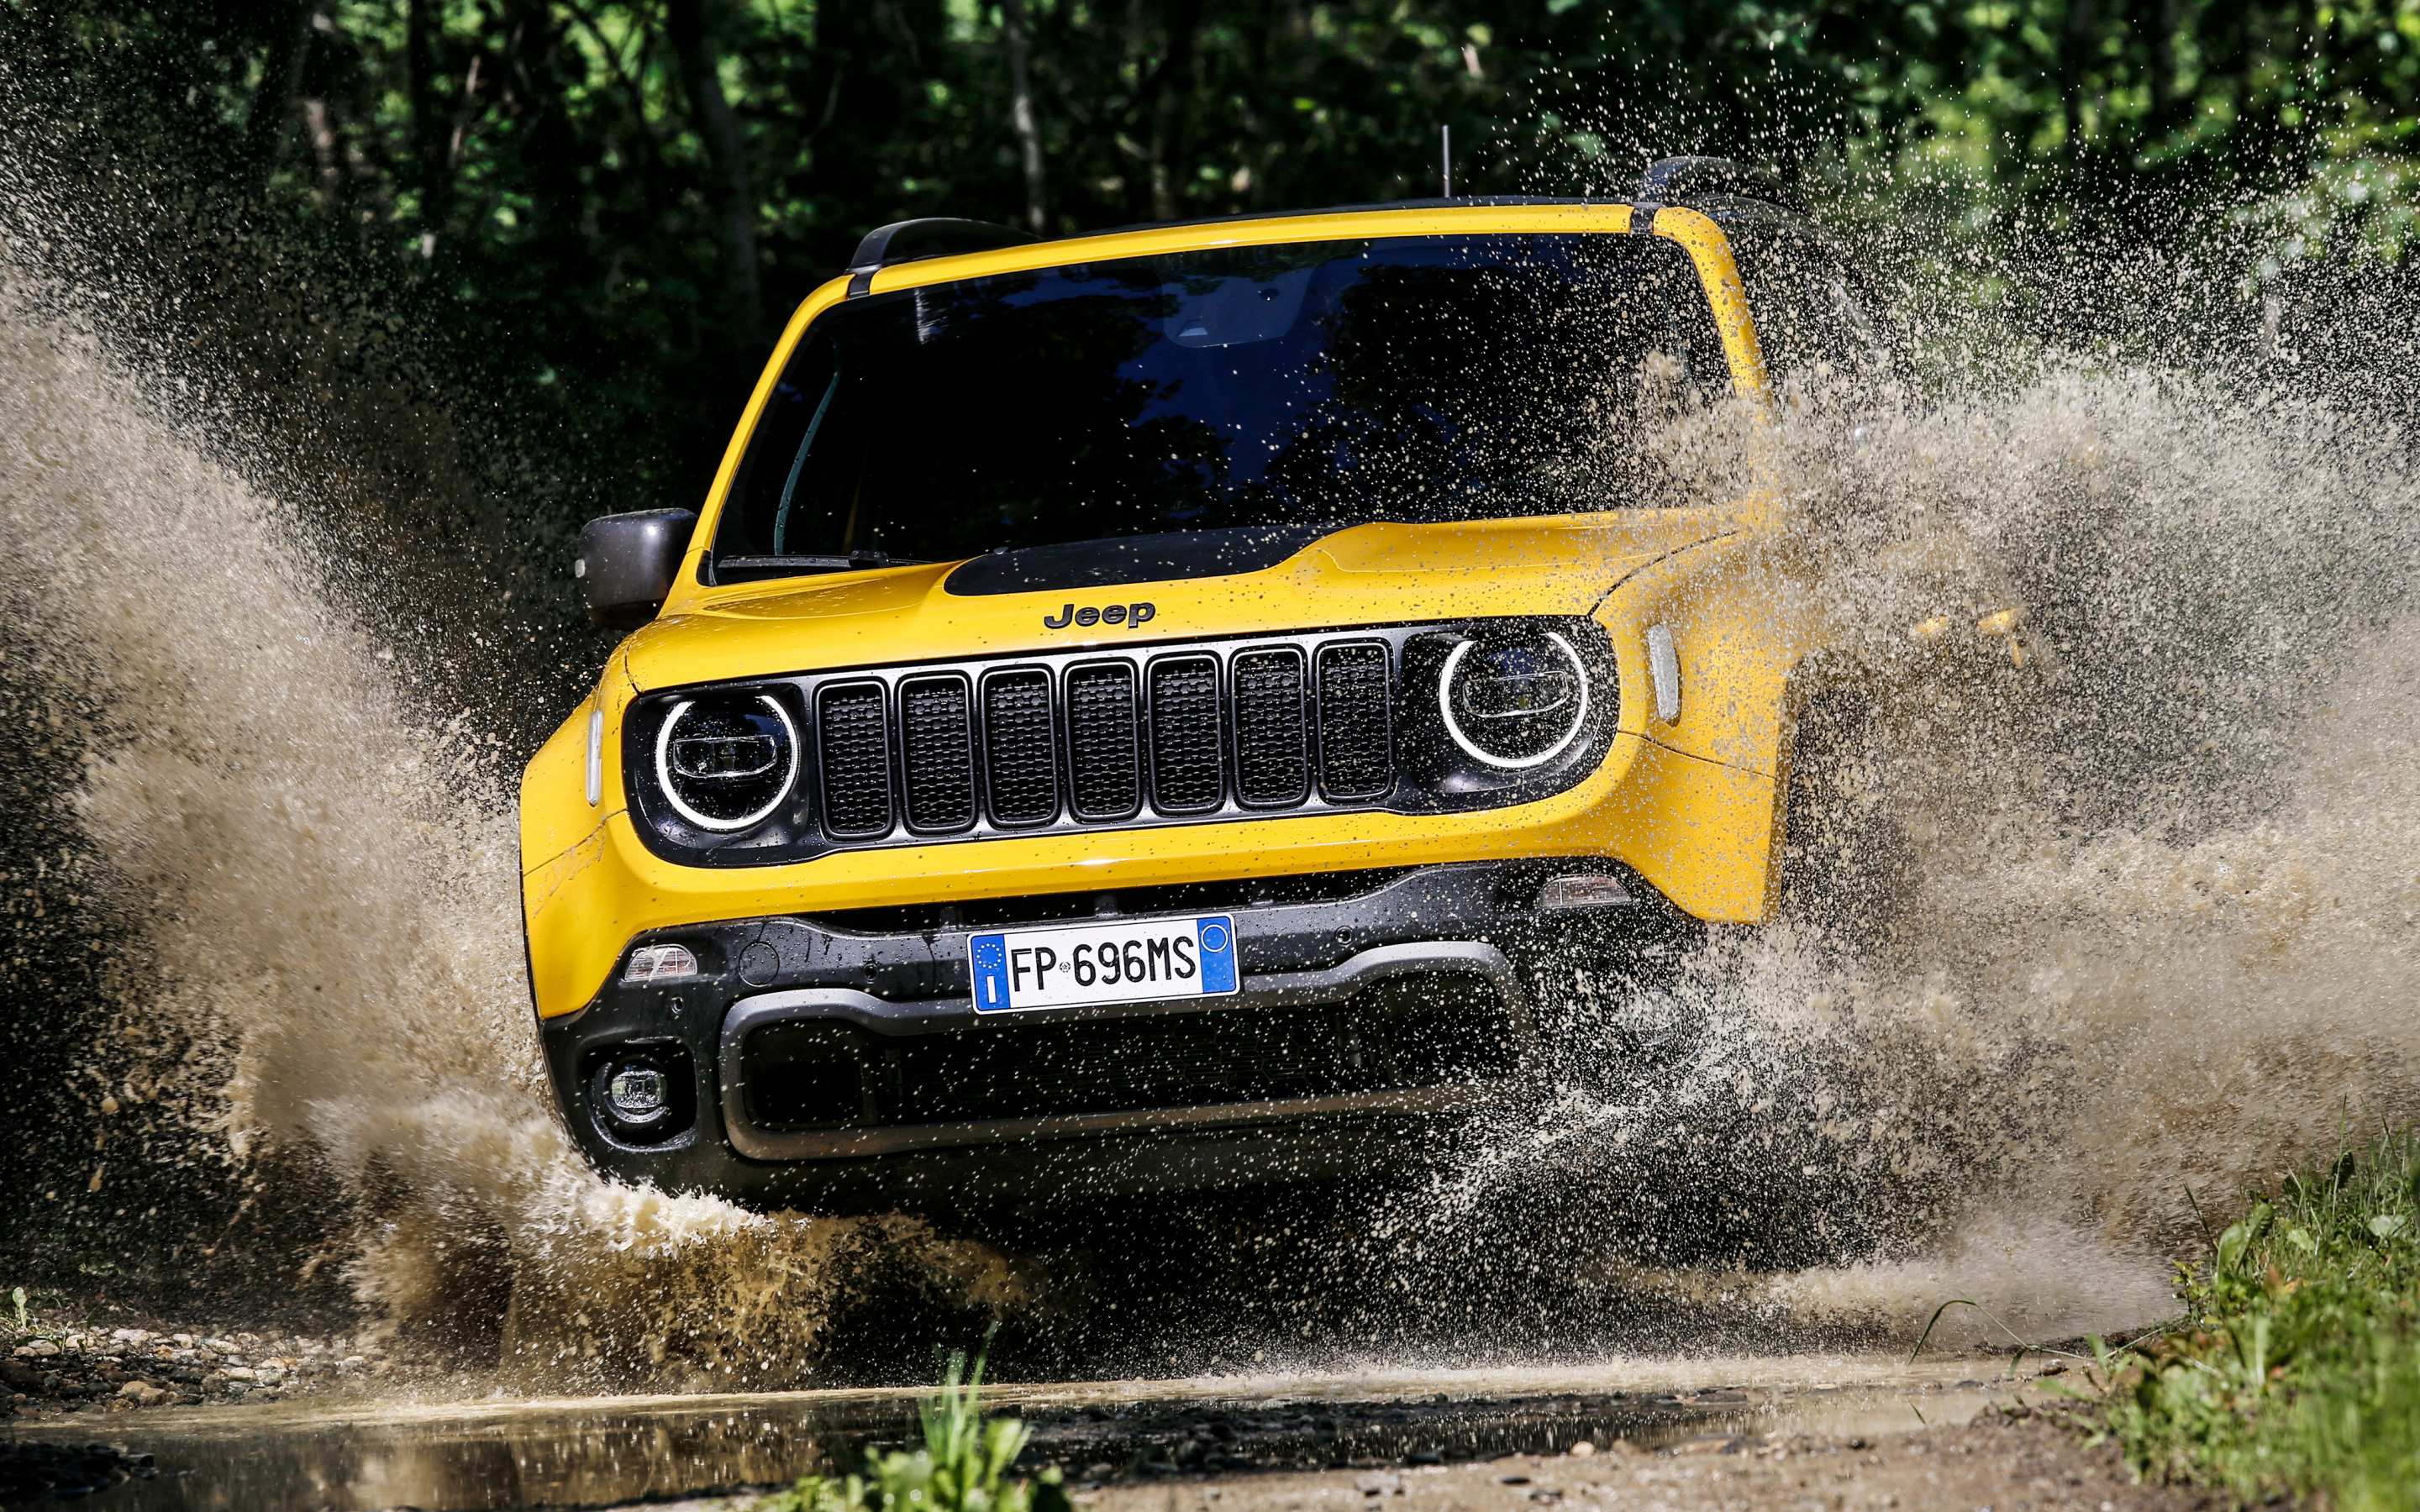 Download wallpapers Jeep Renegade Trailhawk 2018 front view new 2880x1800